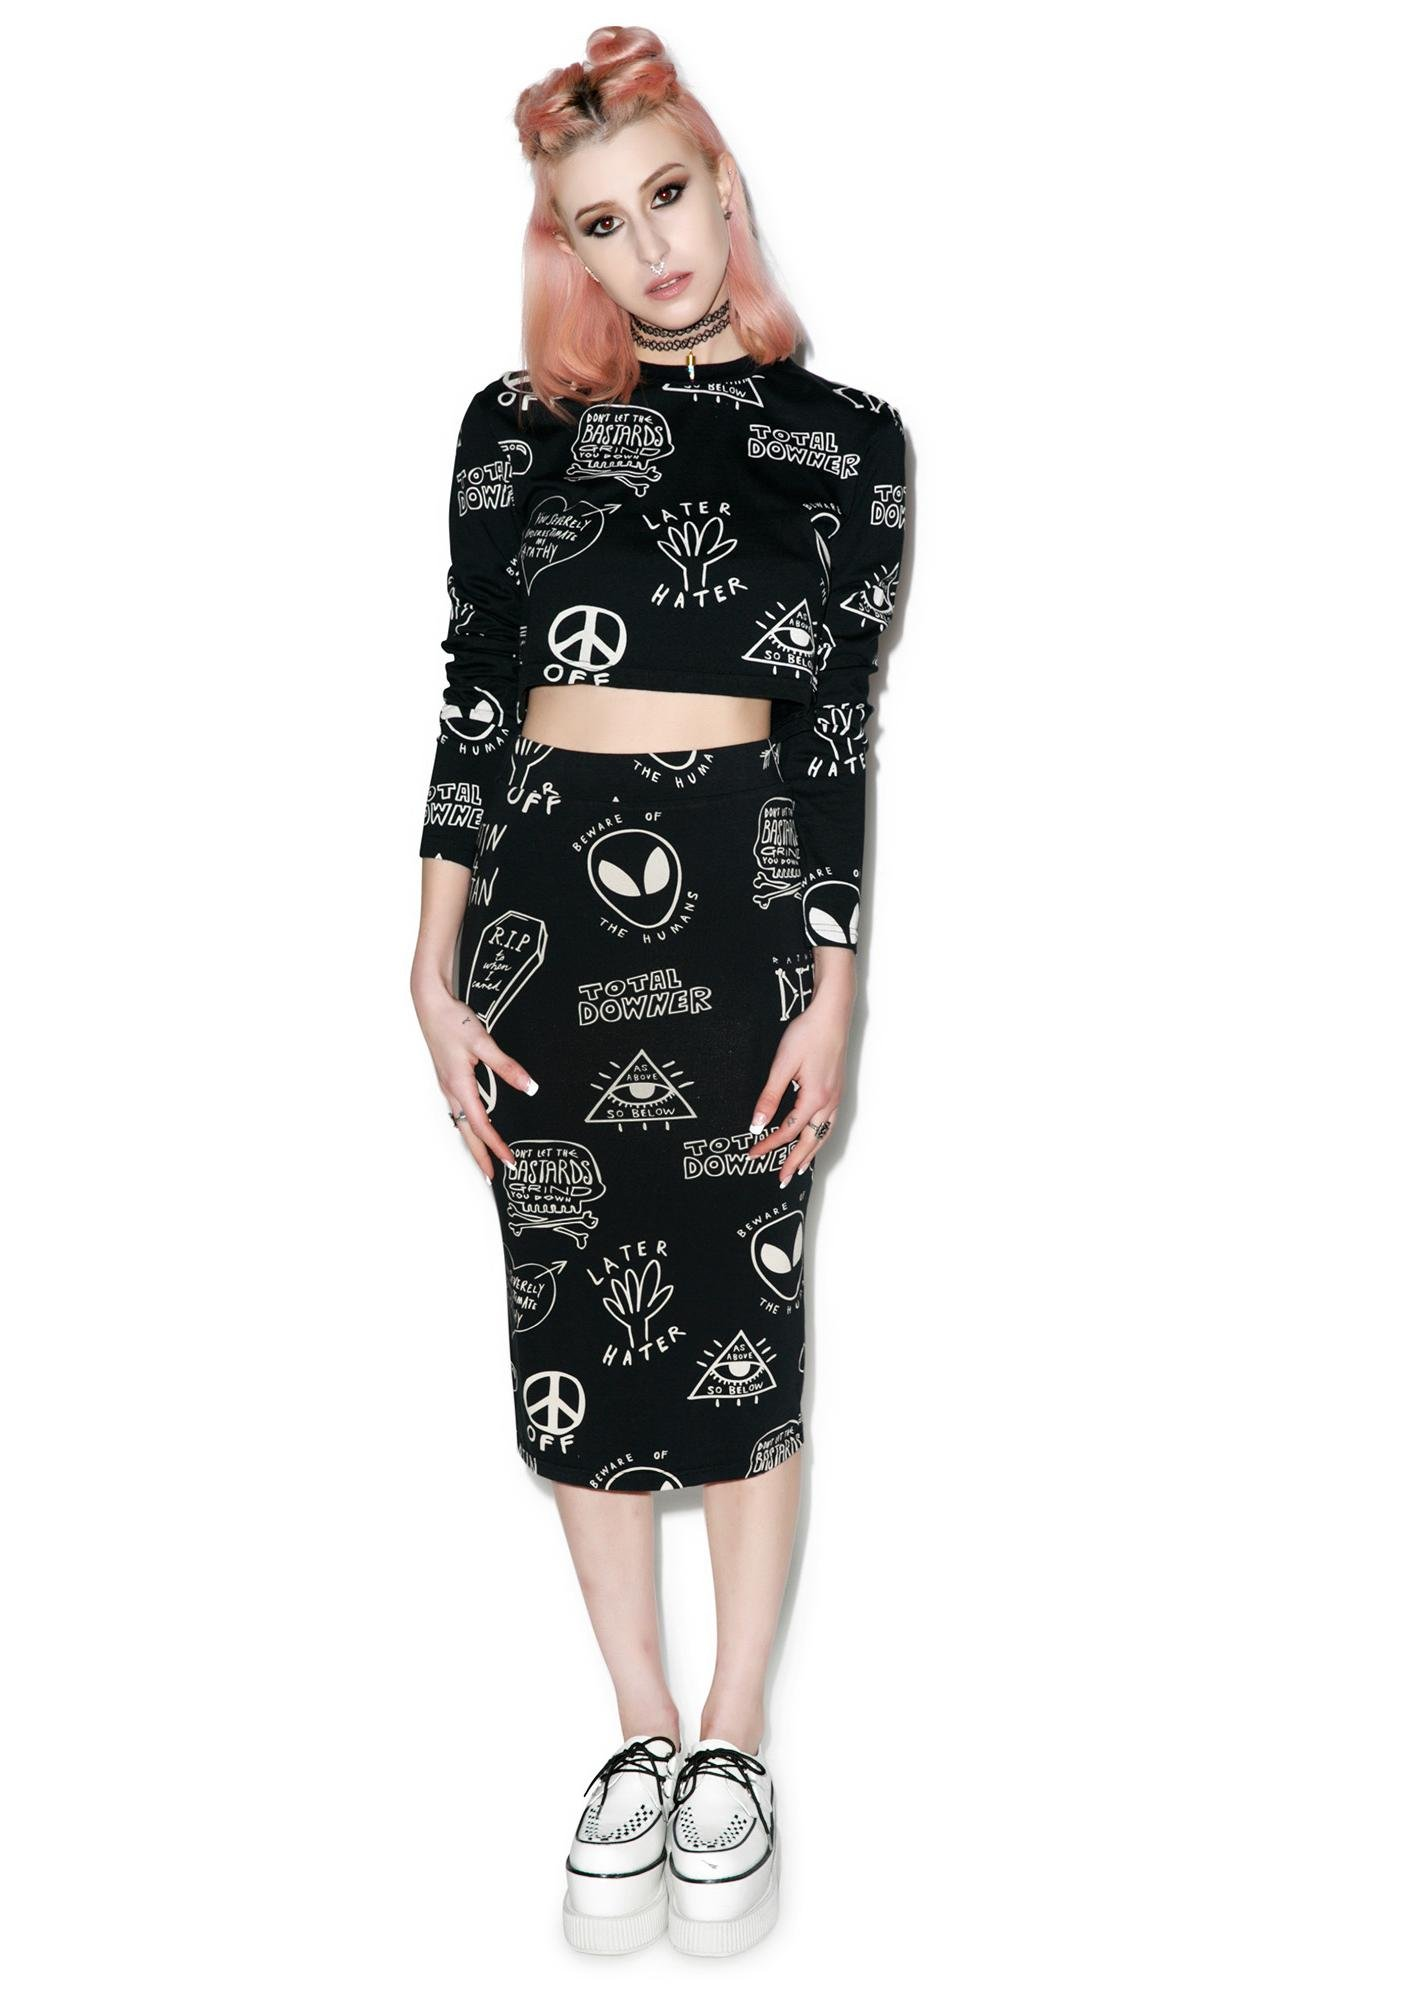 Disturbia Downer Crop Top